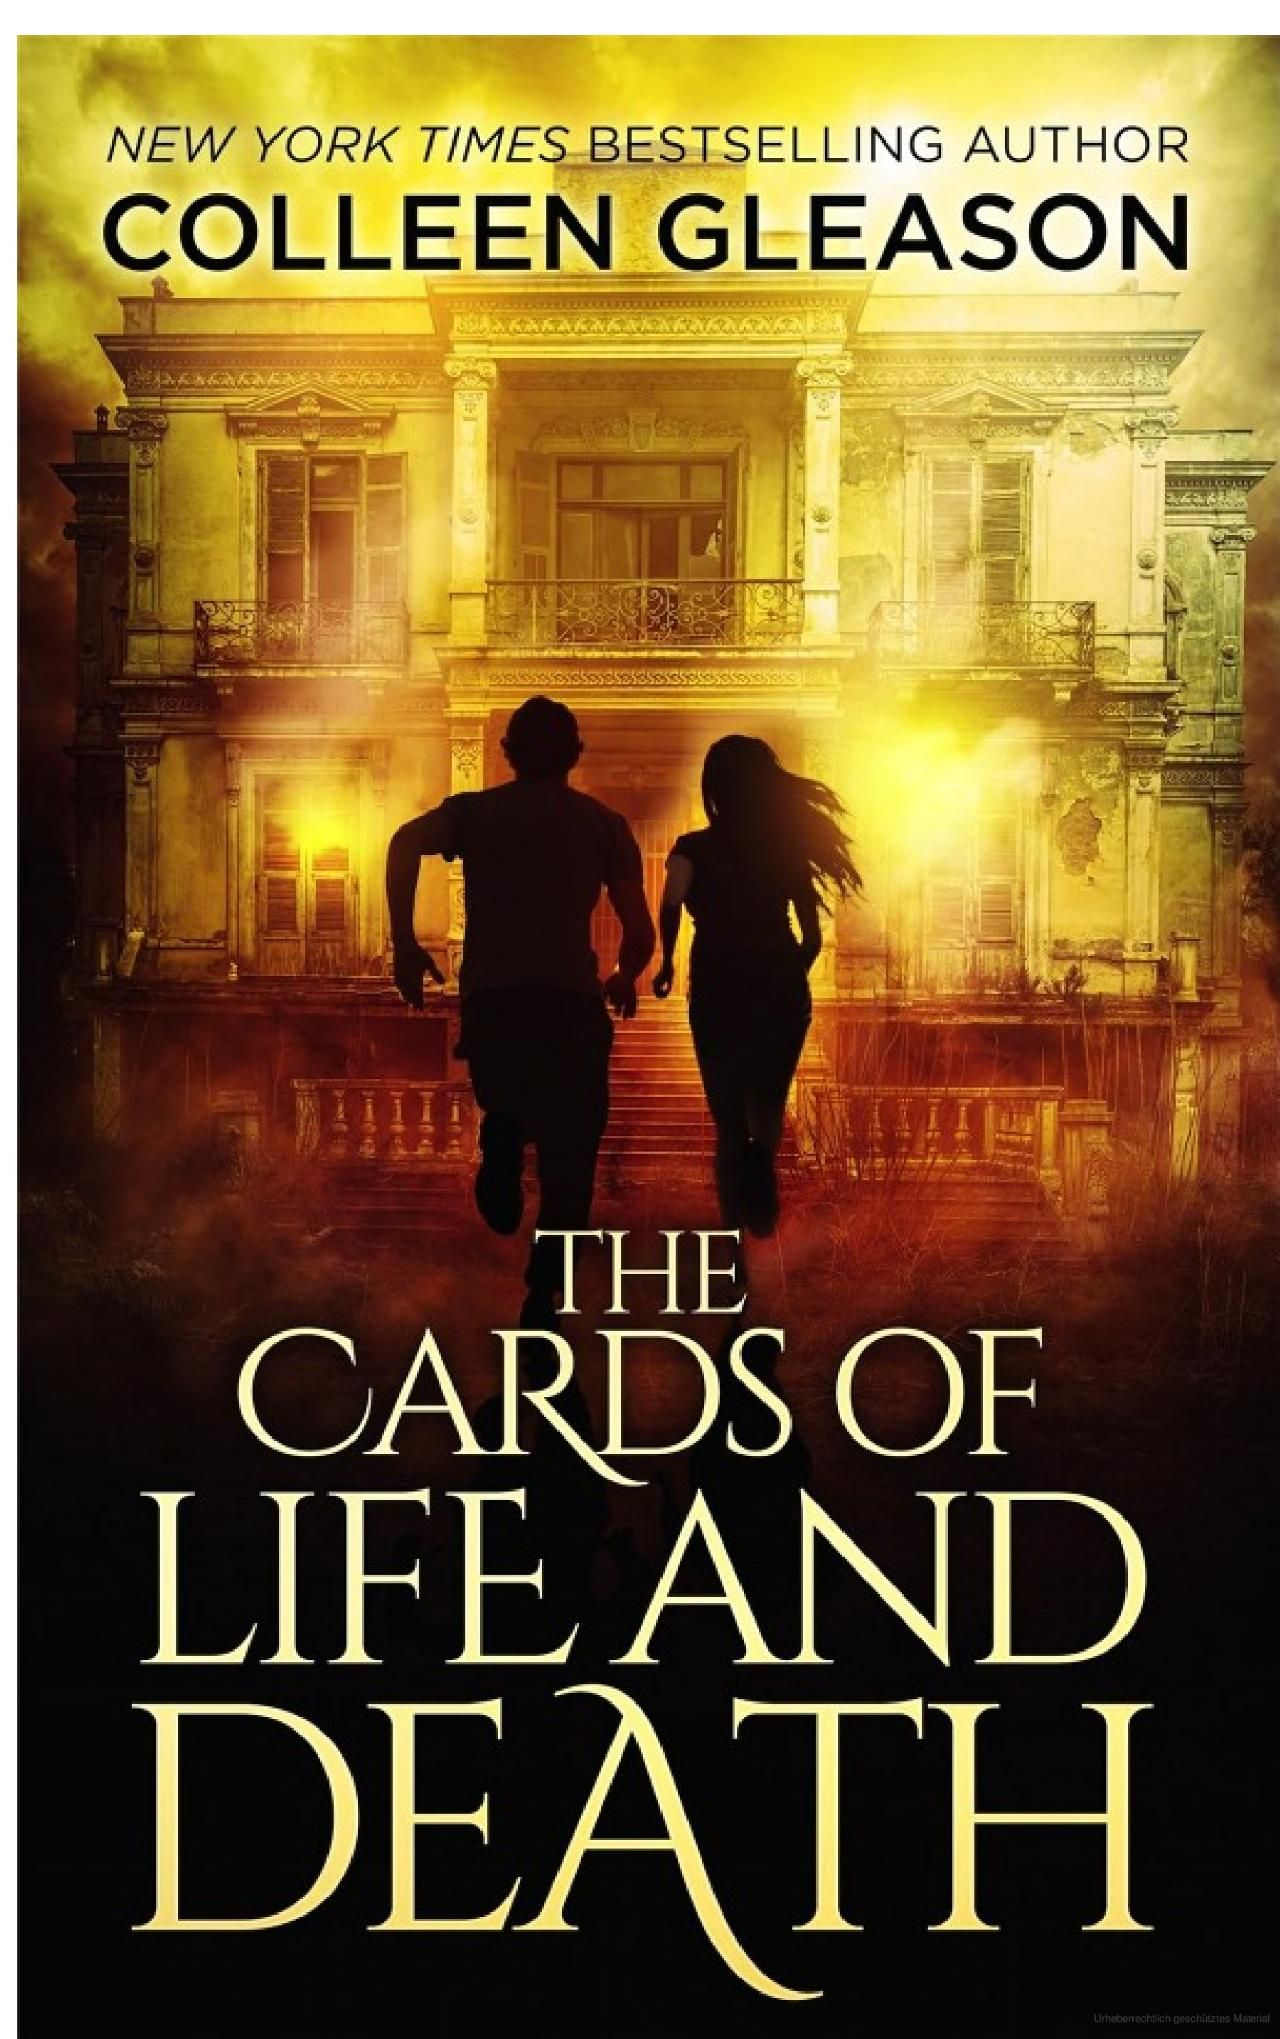 The Cards of Life and Death: Romantic Suspense